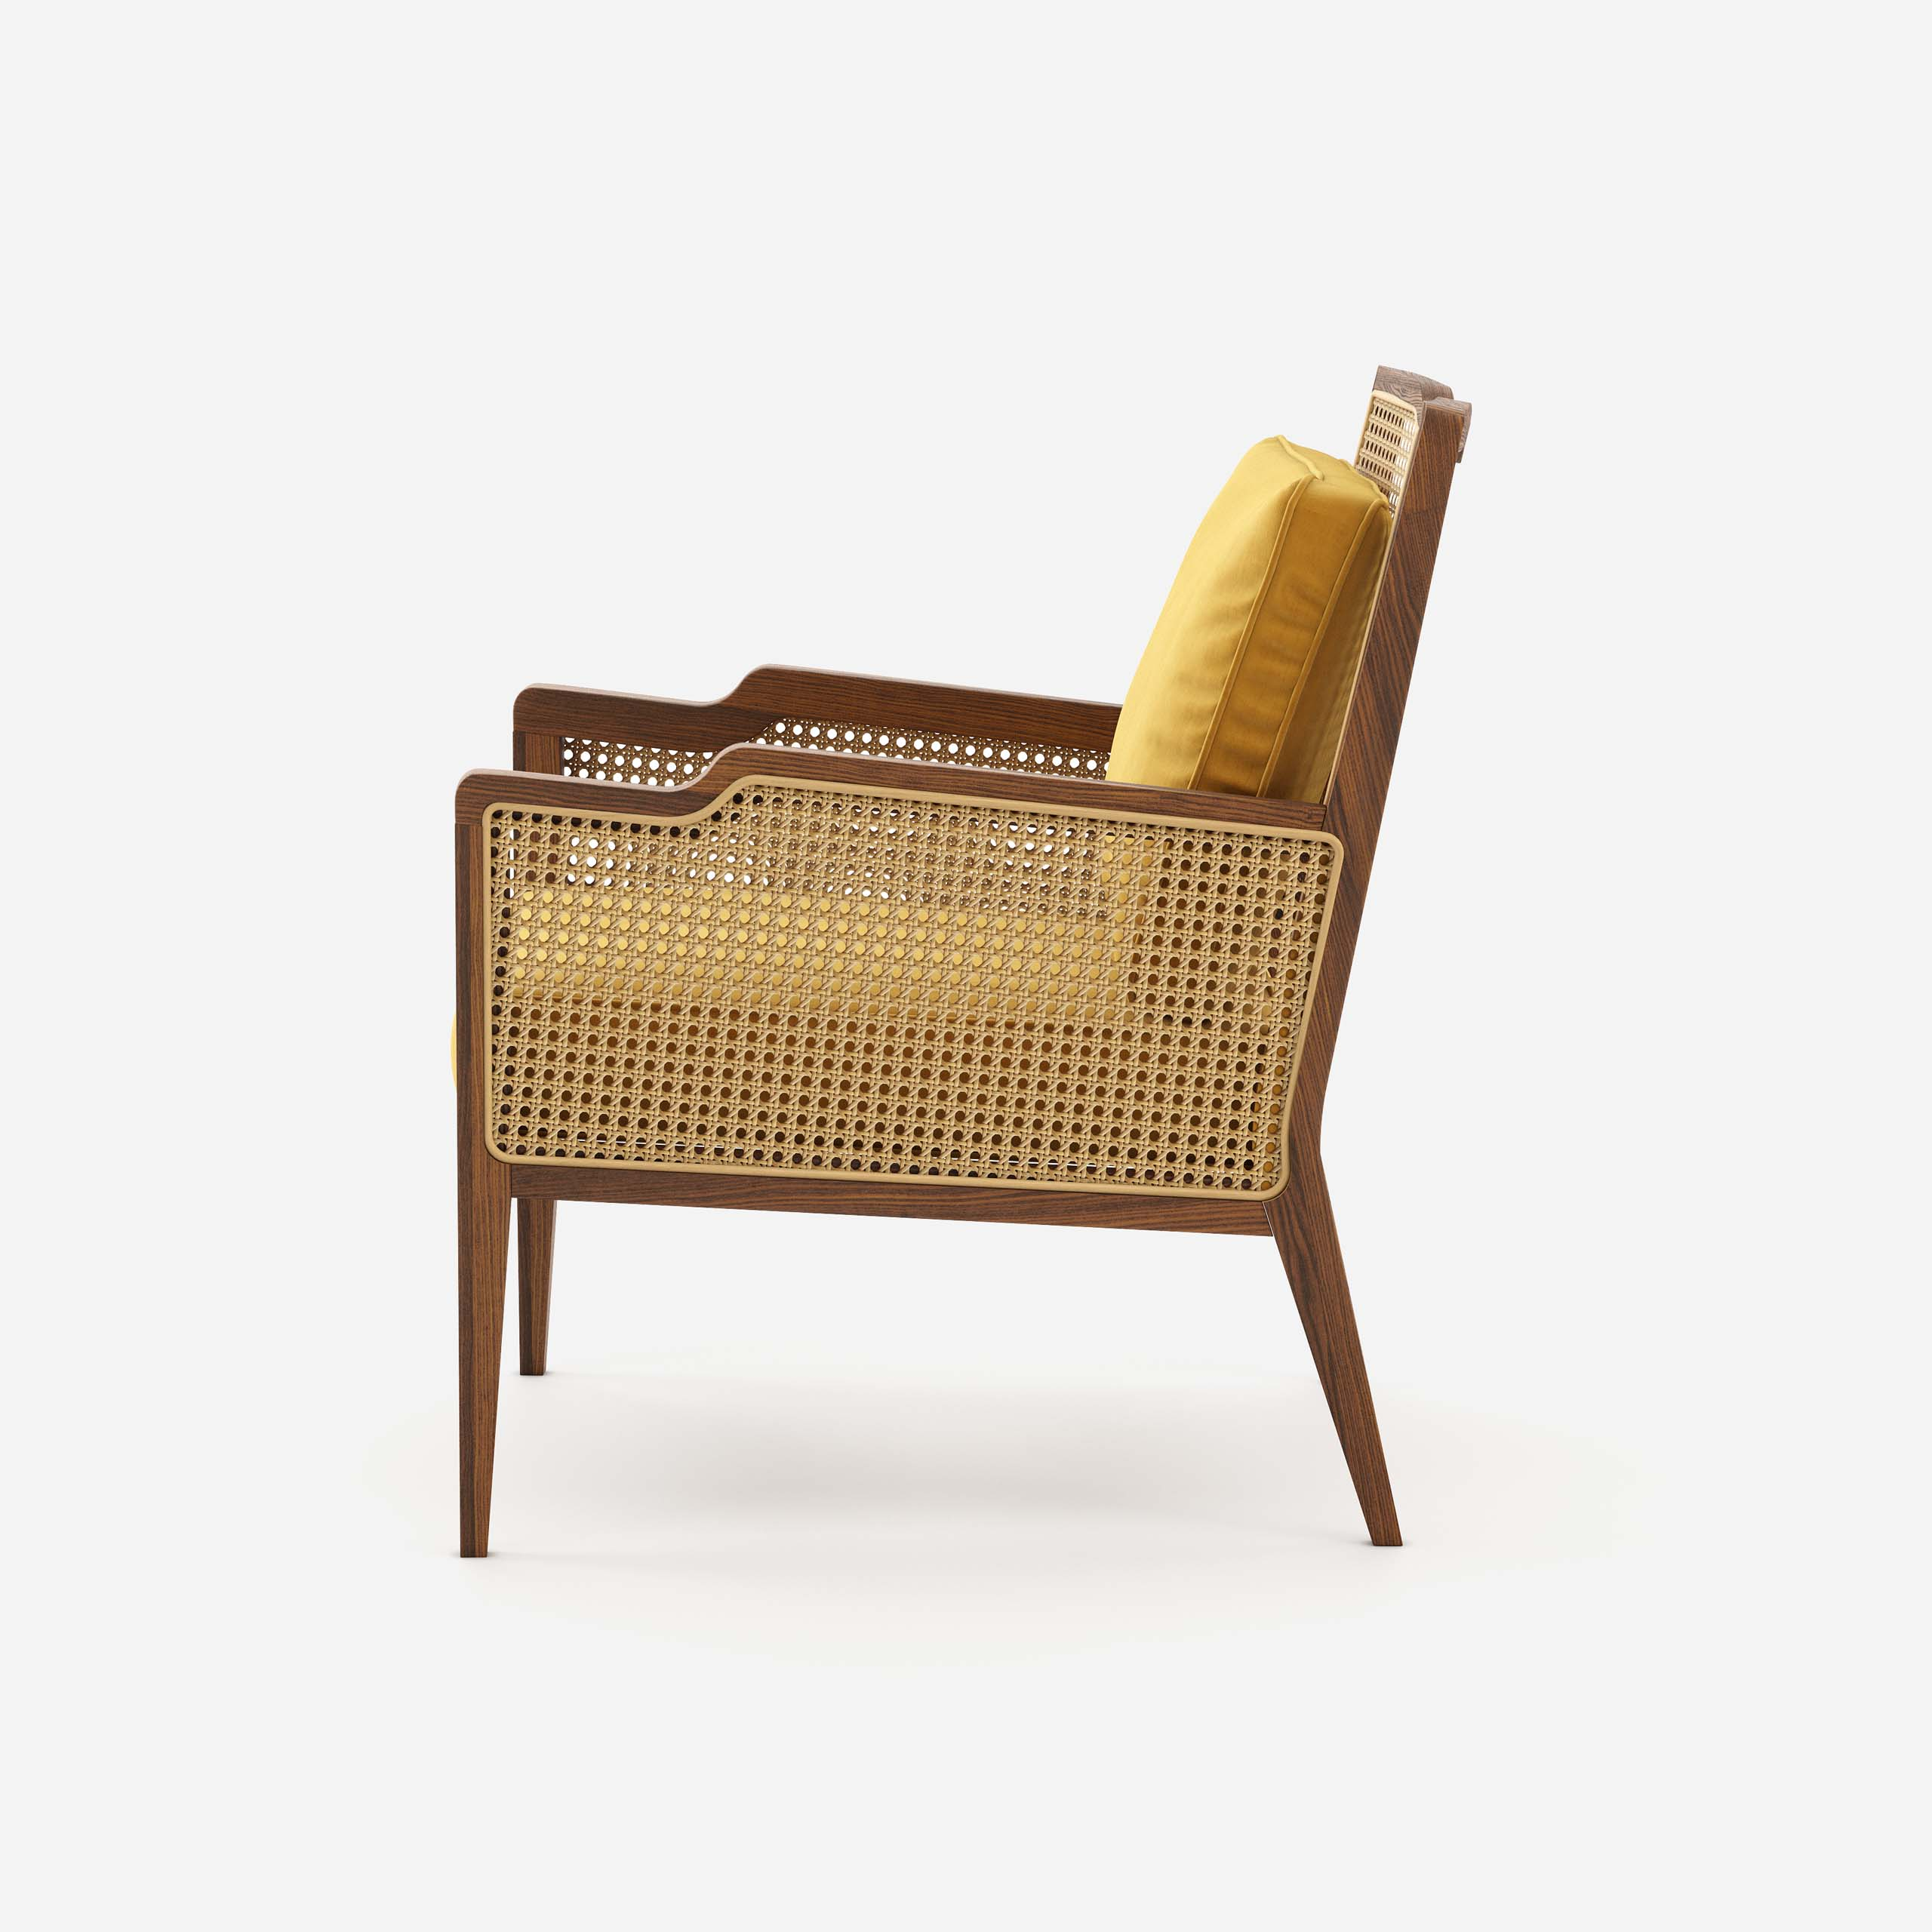 eva-armchair-new-collection-domkapa-2021-living-room-decor